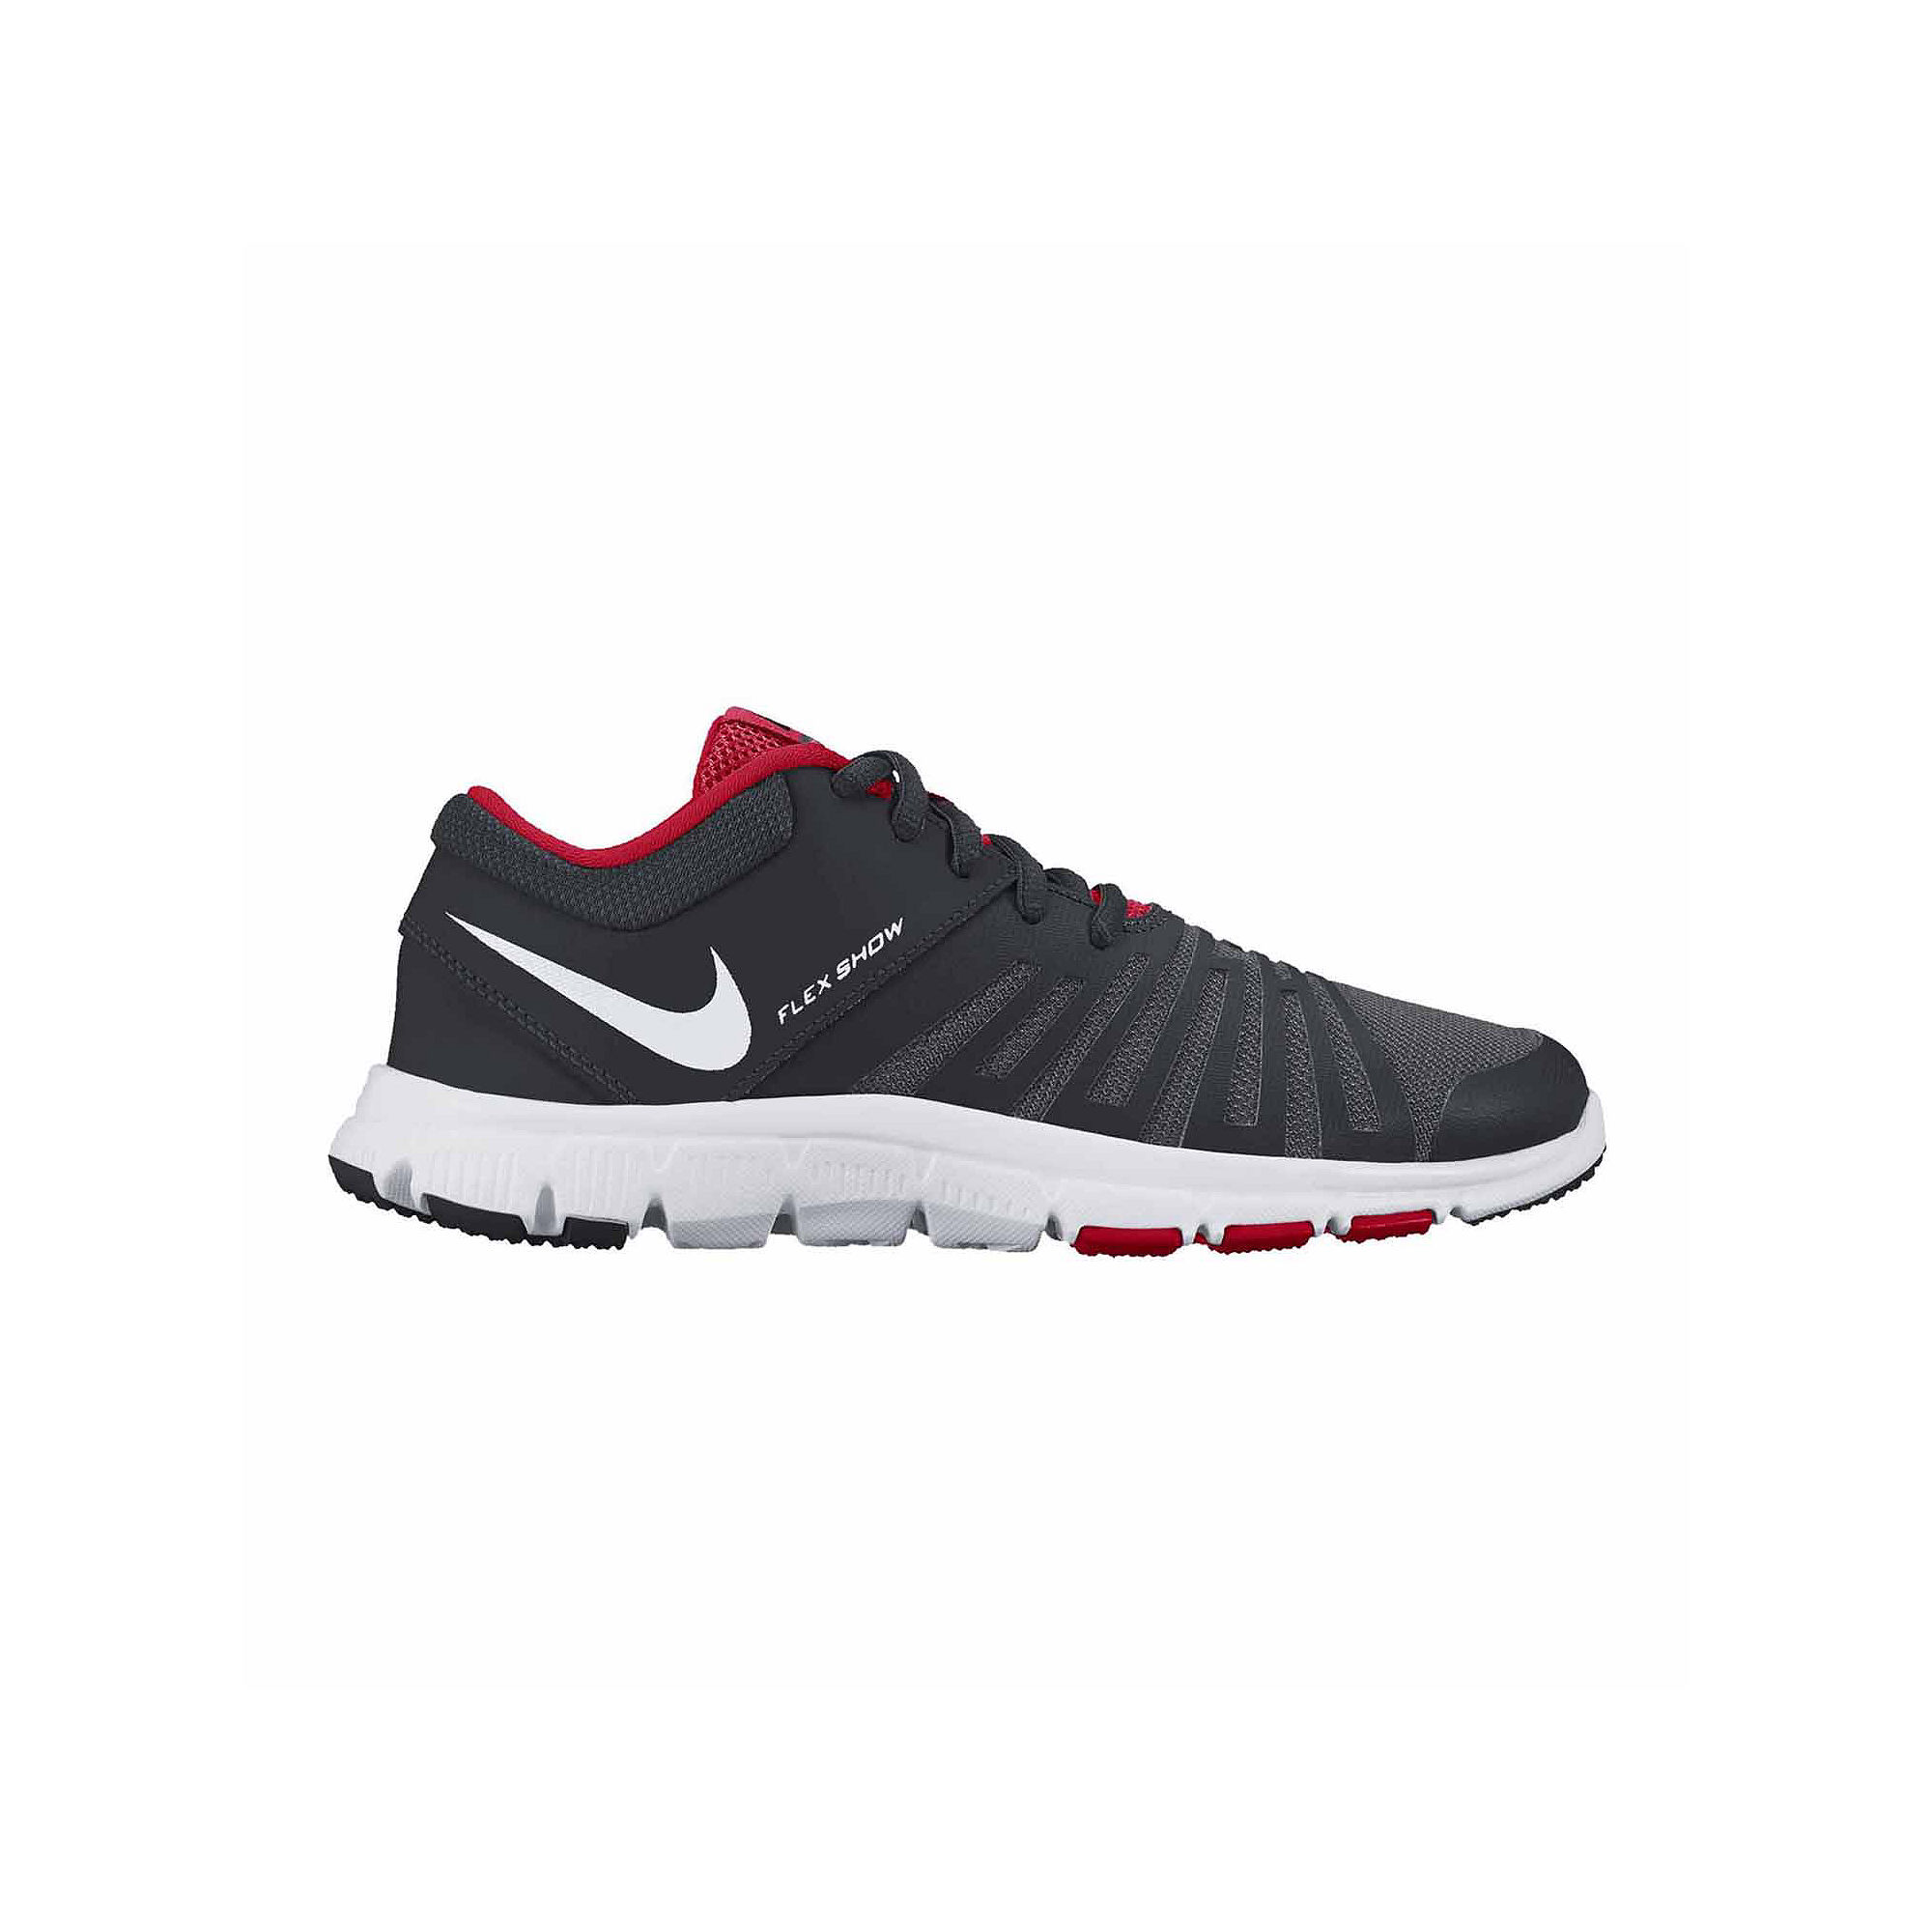 984277551ca04 ... UPC 091204595164 product image for Nike Flex Show Train 5 Boys Running  Shoes - Big Kids ...